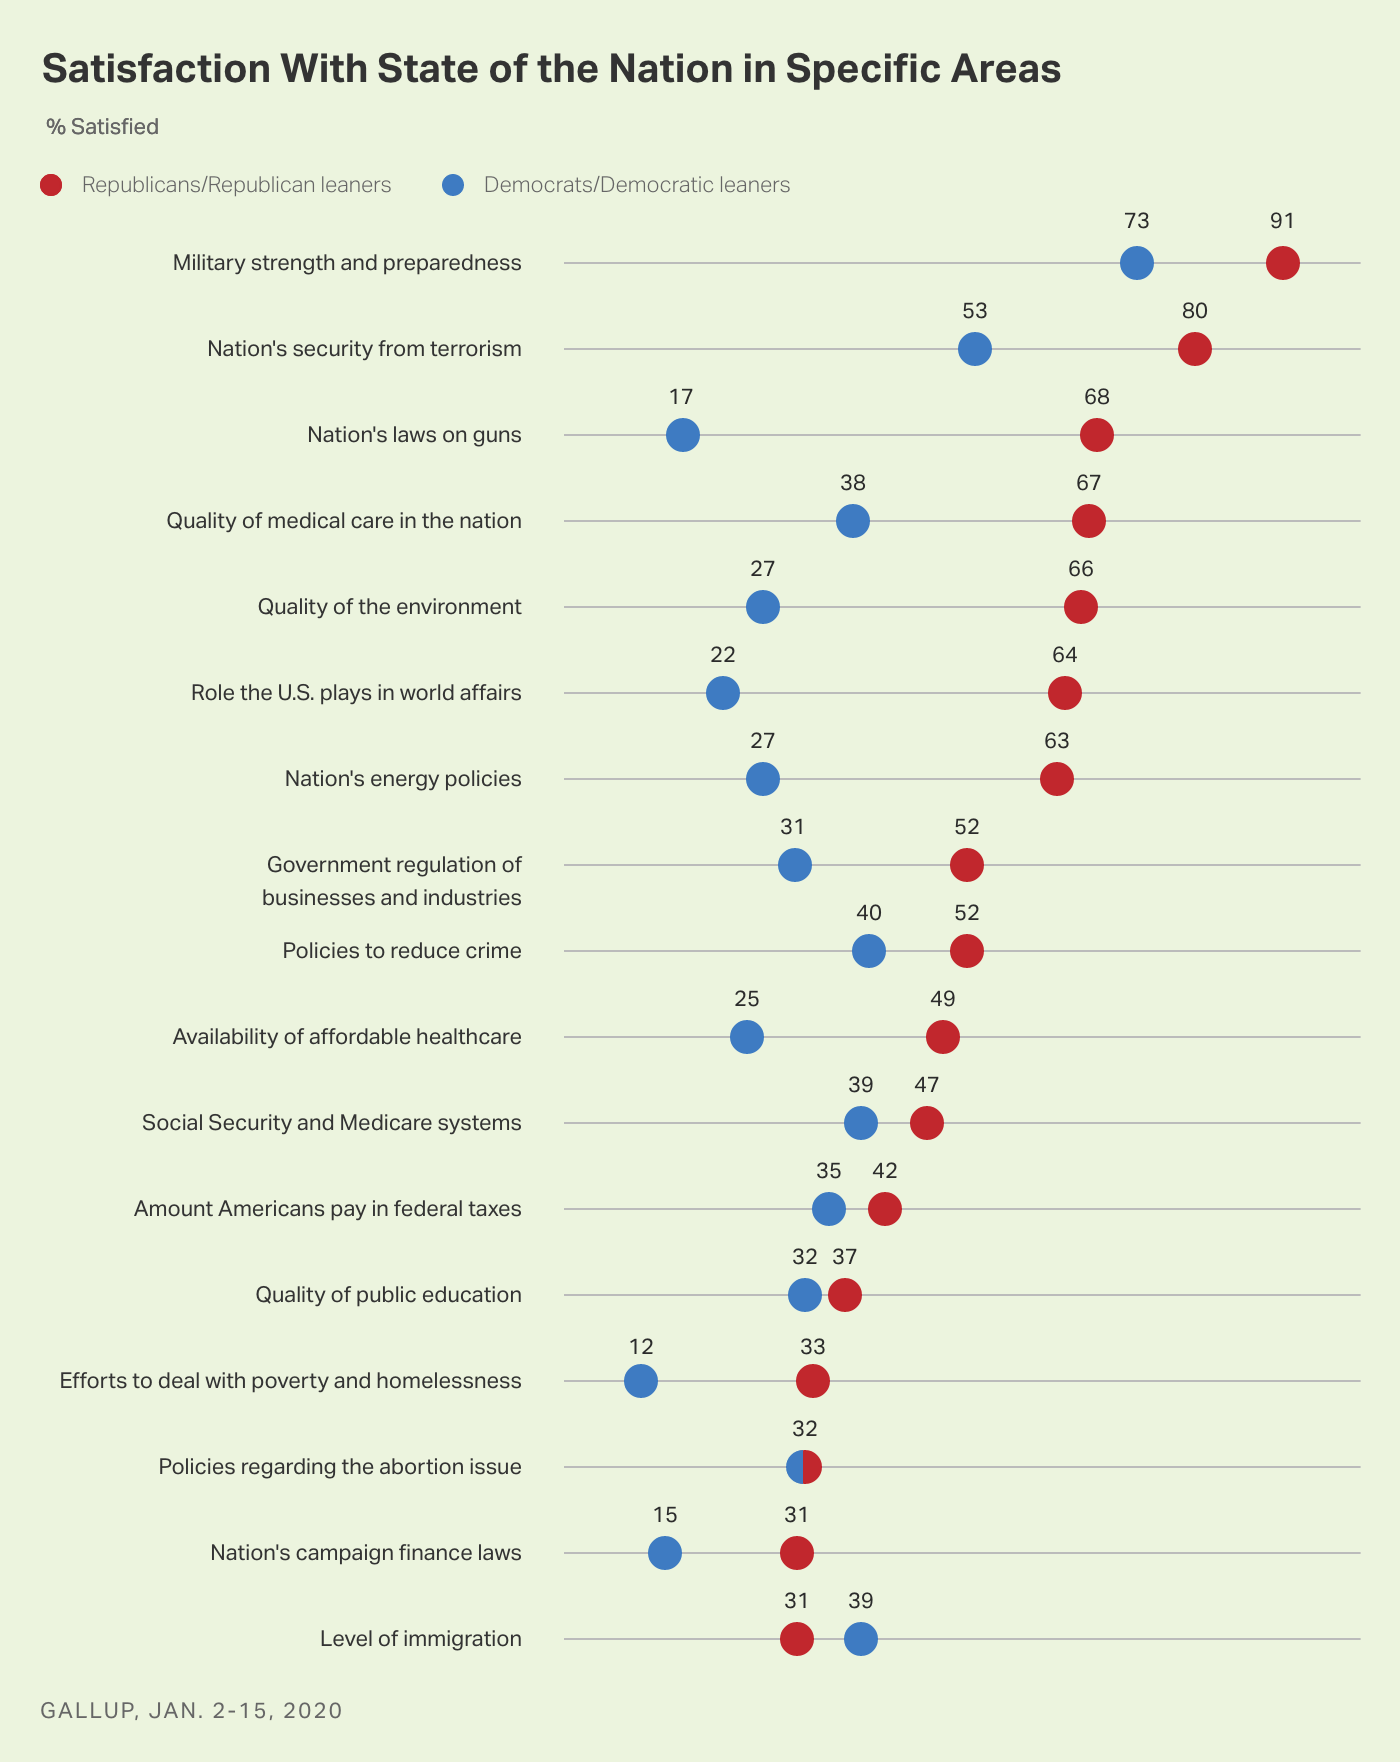 Chart showing percentages of Republicans and Democrats satisfied with each of 17 specific issues facing the country.